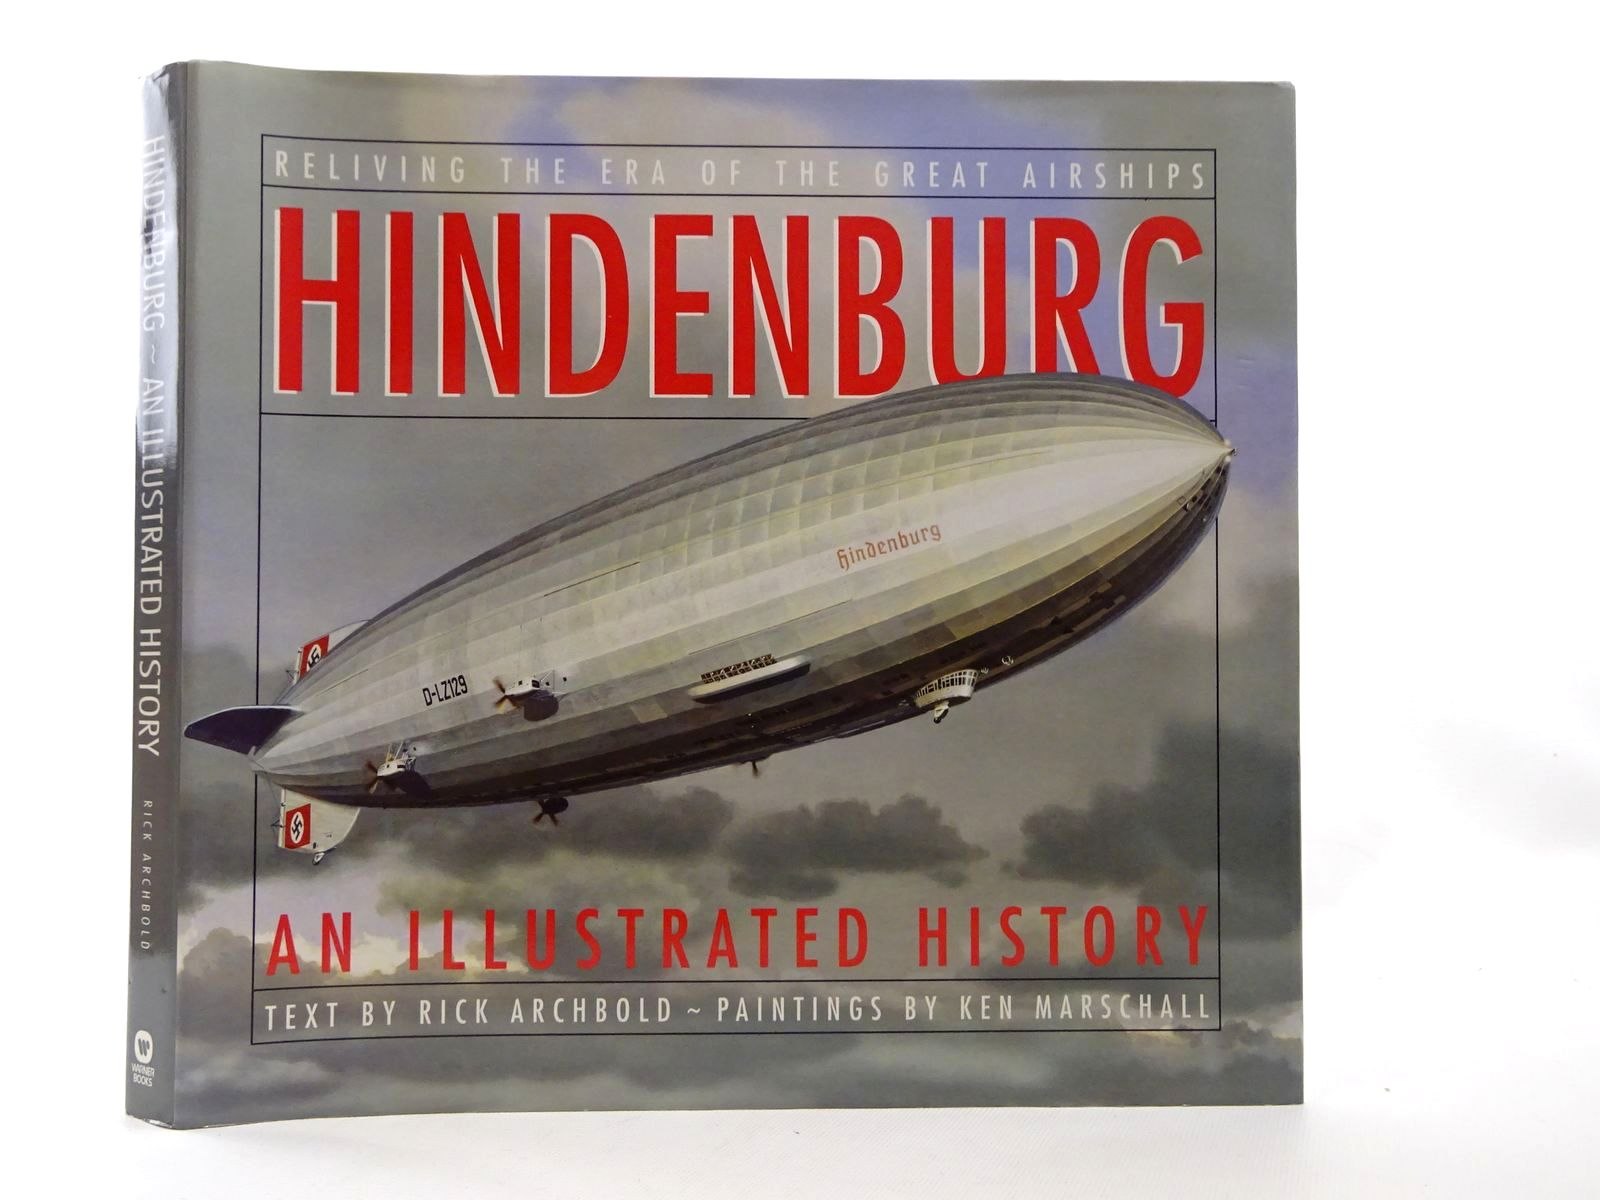 Photo of HINDENBURG: AN ILLUSTRATED HISTORY written by Archbold, Rick illustrated by Marschall, Ken published by Warner Books, Madison Press Books (STOCK CODE: 1610172)  for sale by Stella & Rose's Books